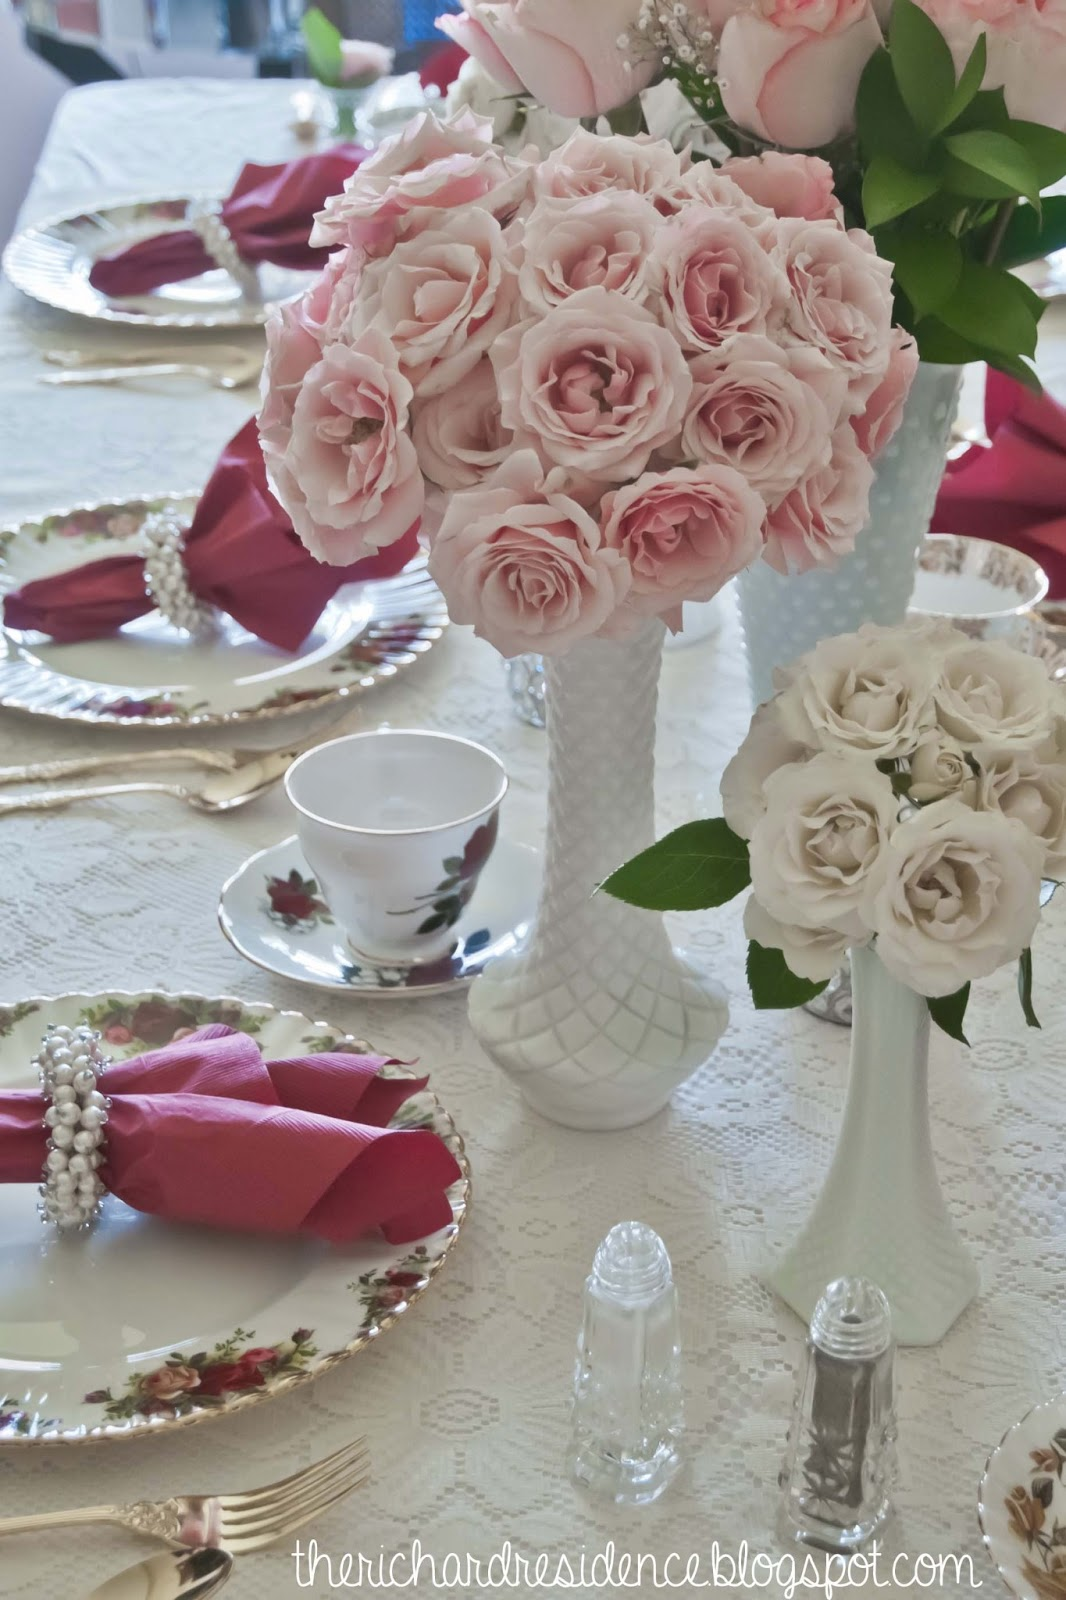 The Richard Residence: Afternoon Tea Themed Bridal Shower